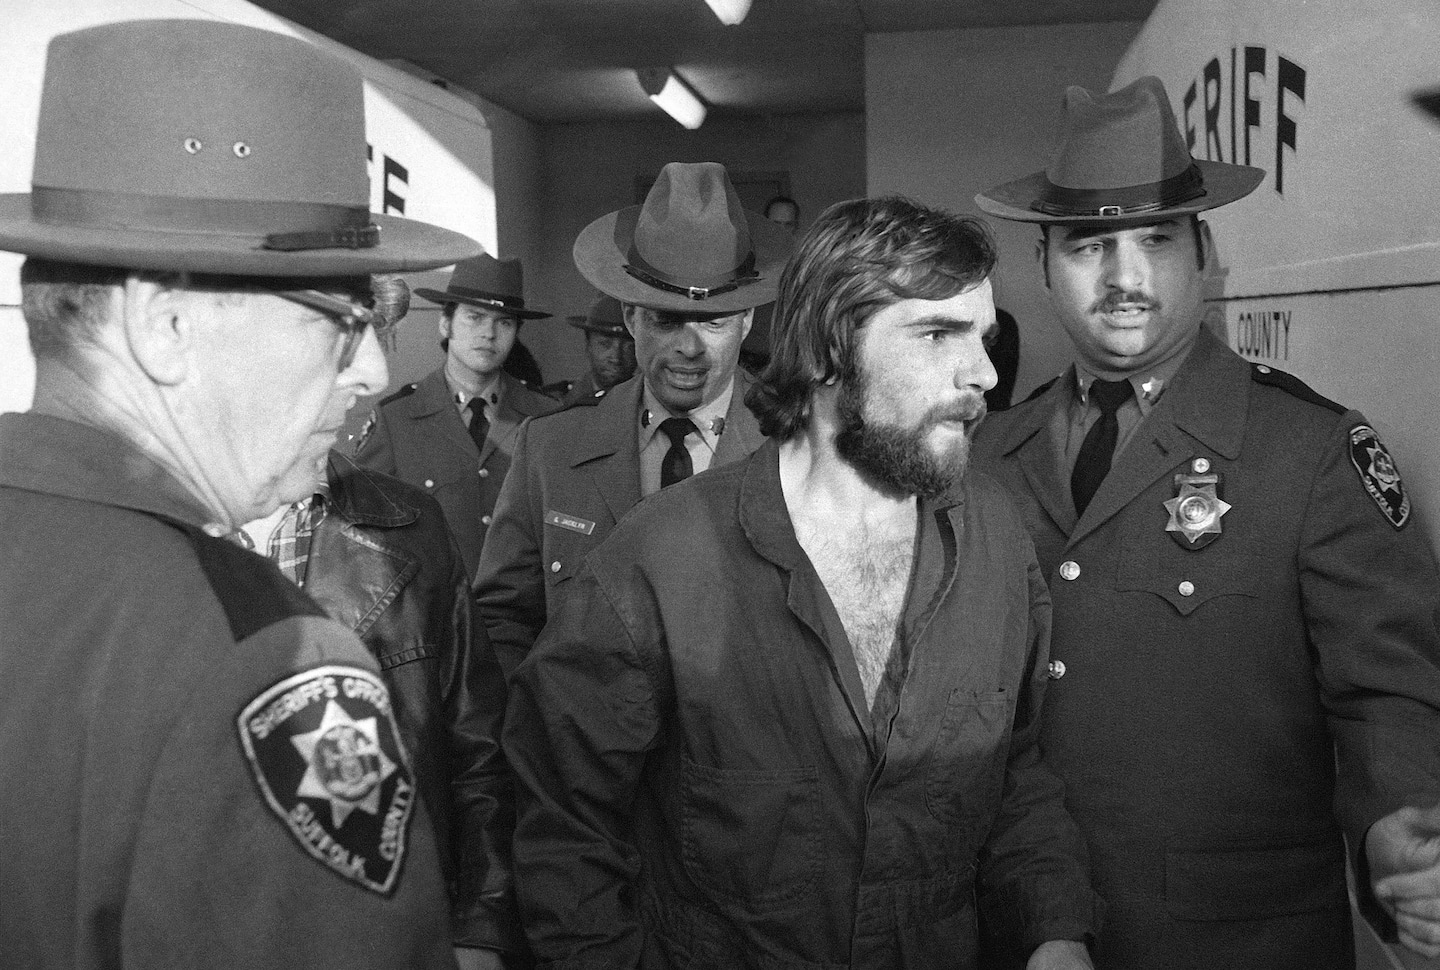 Ronald DeFeo Jr., whose slayings of family members launched 'The Amityville Horror,' dies at 69